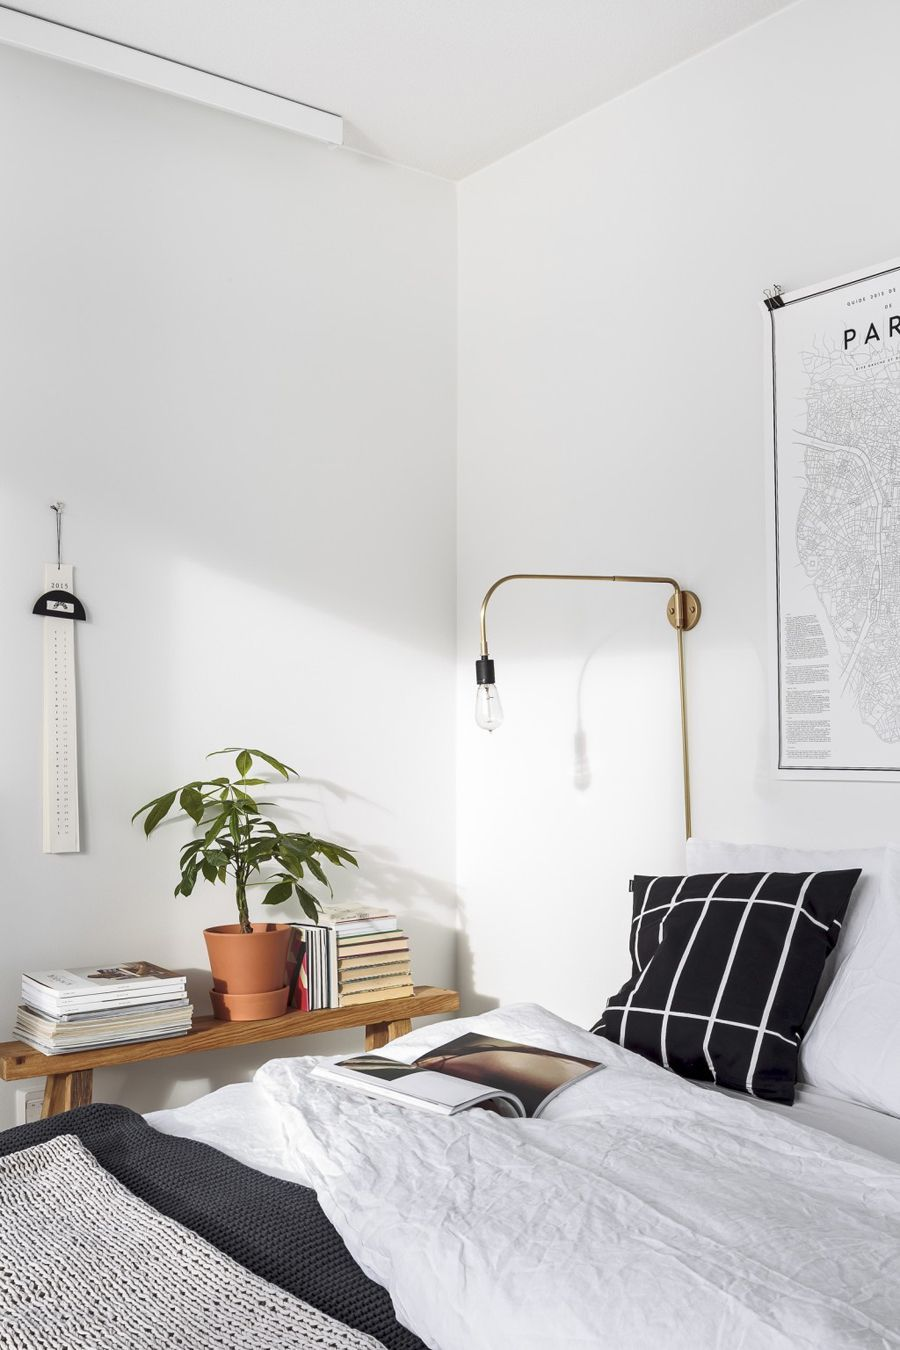 Simple Black And White Themed Room Plants Are Such A Great Way To